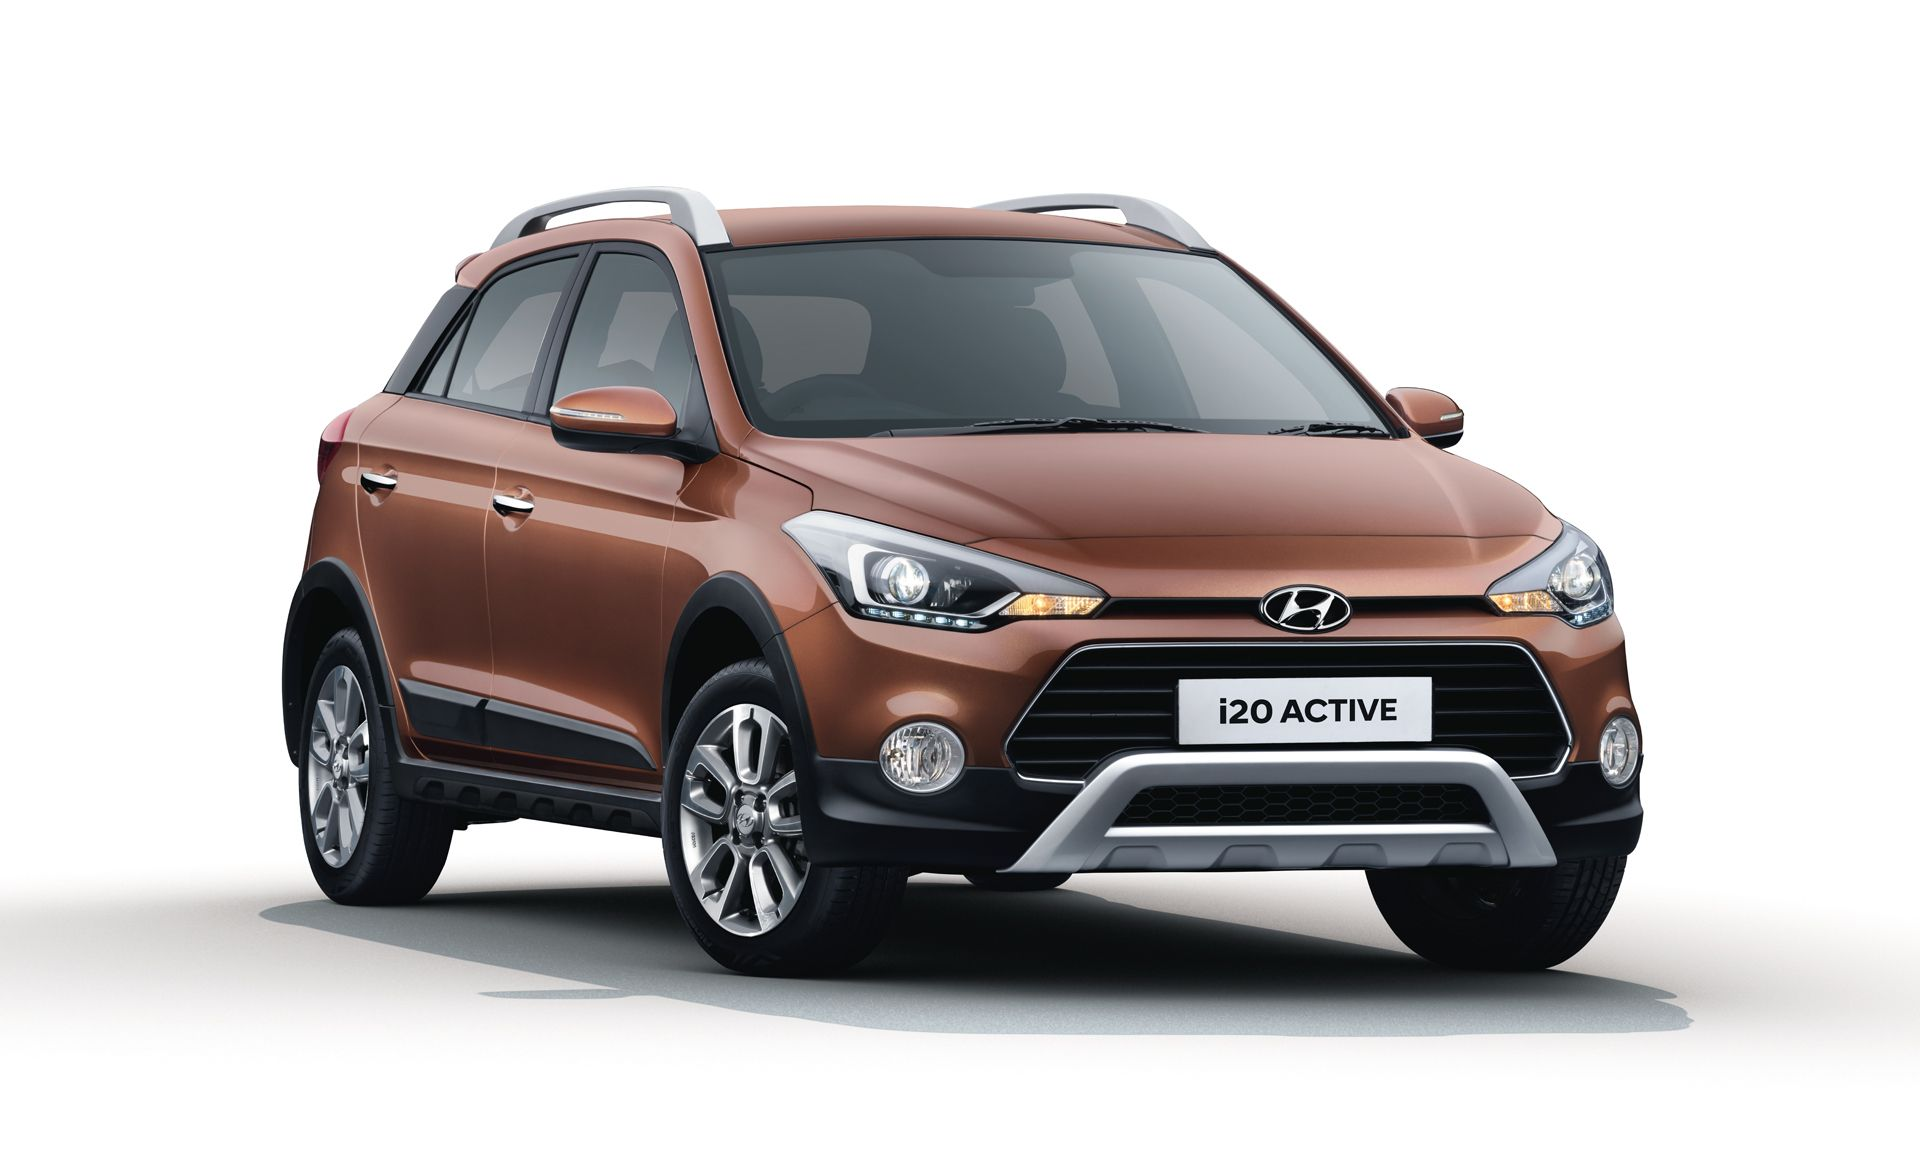 Hyundai i20 Active Car Interior Feature - Infotainment System